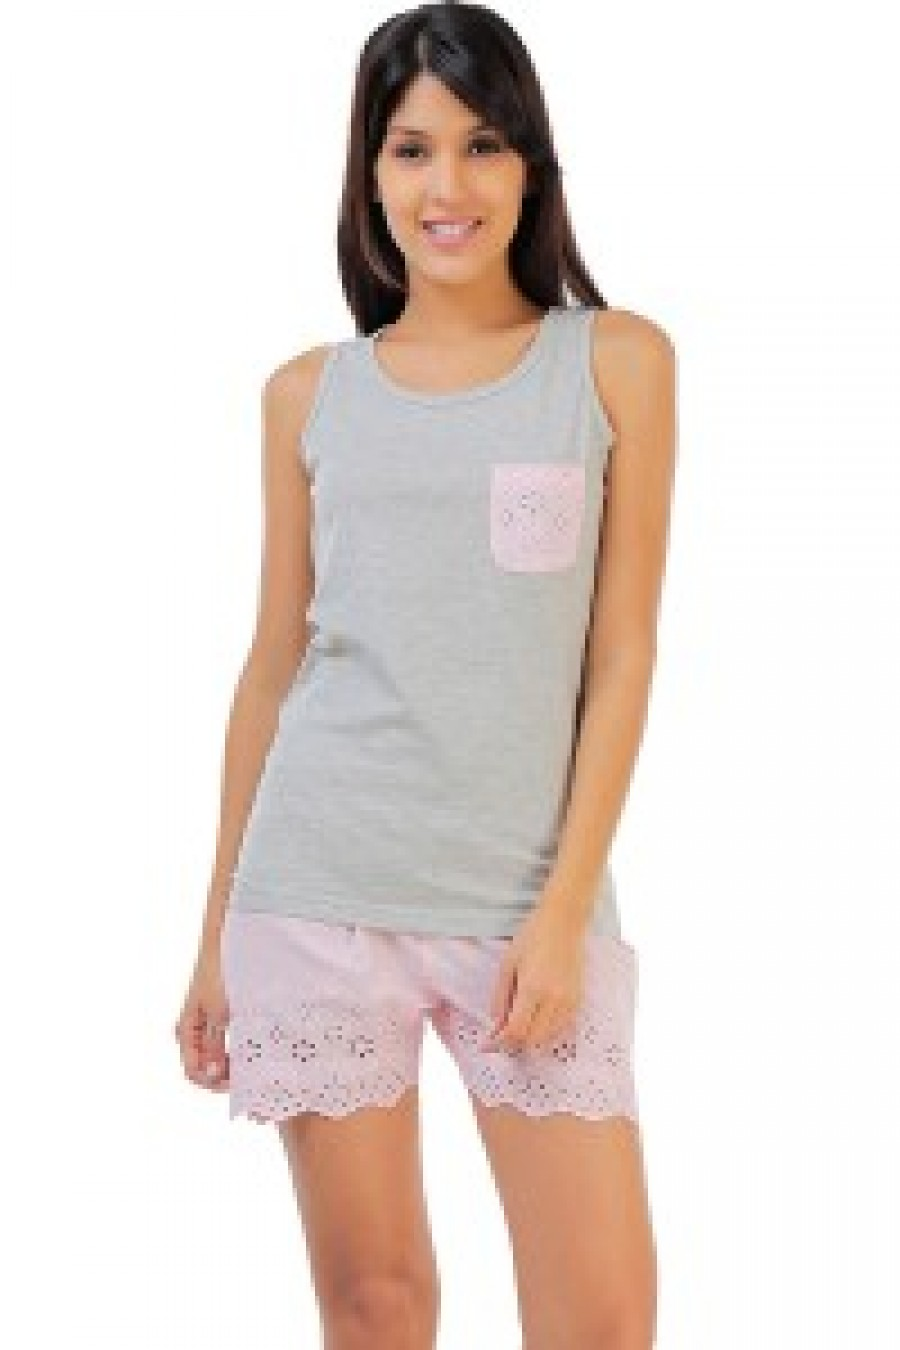 Buy Penny Dreamwear Fine Cotton Sleeveless Top And Shorts Set With Hakoba  Lace Grey n Pink 93c8ecf91